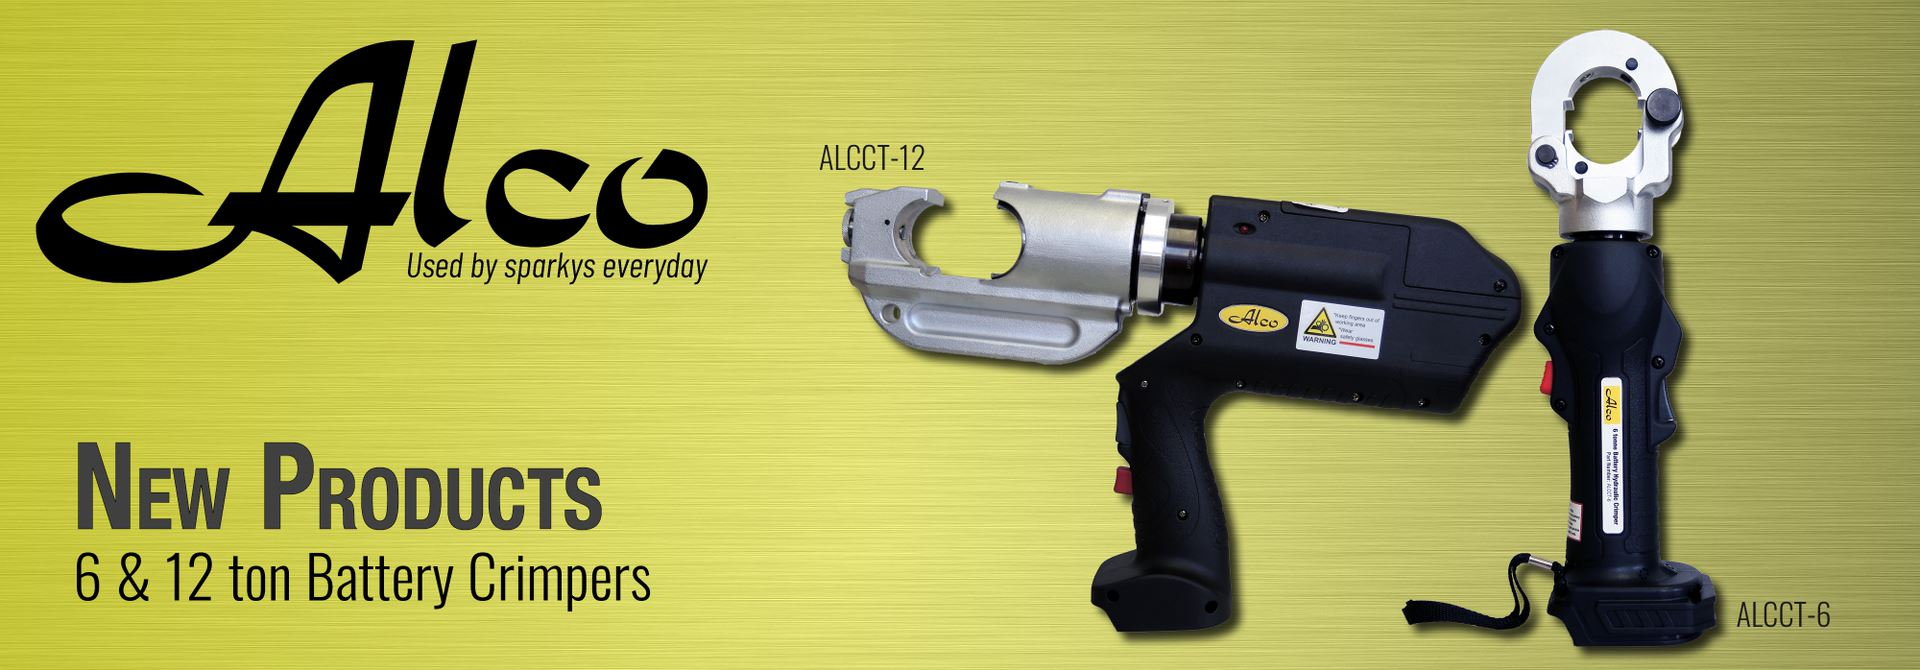 6 & 12 ton Battery Crimpers